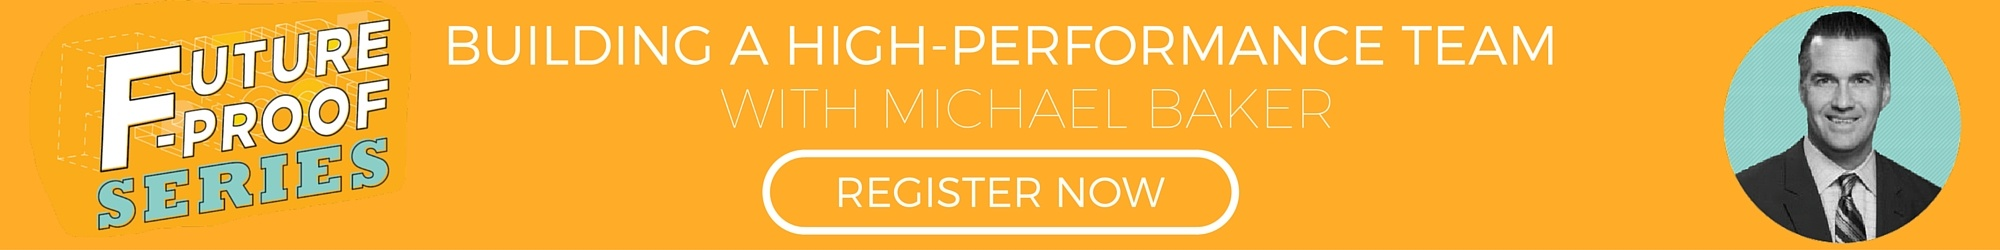 Register to free and learn how to build a high performance team